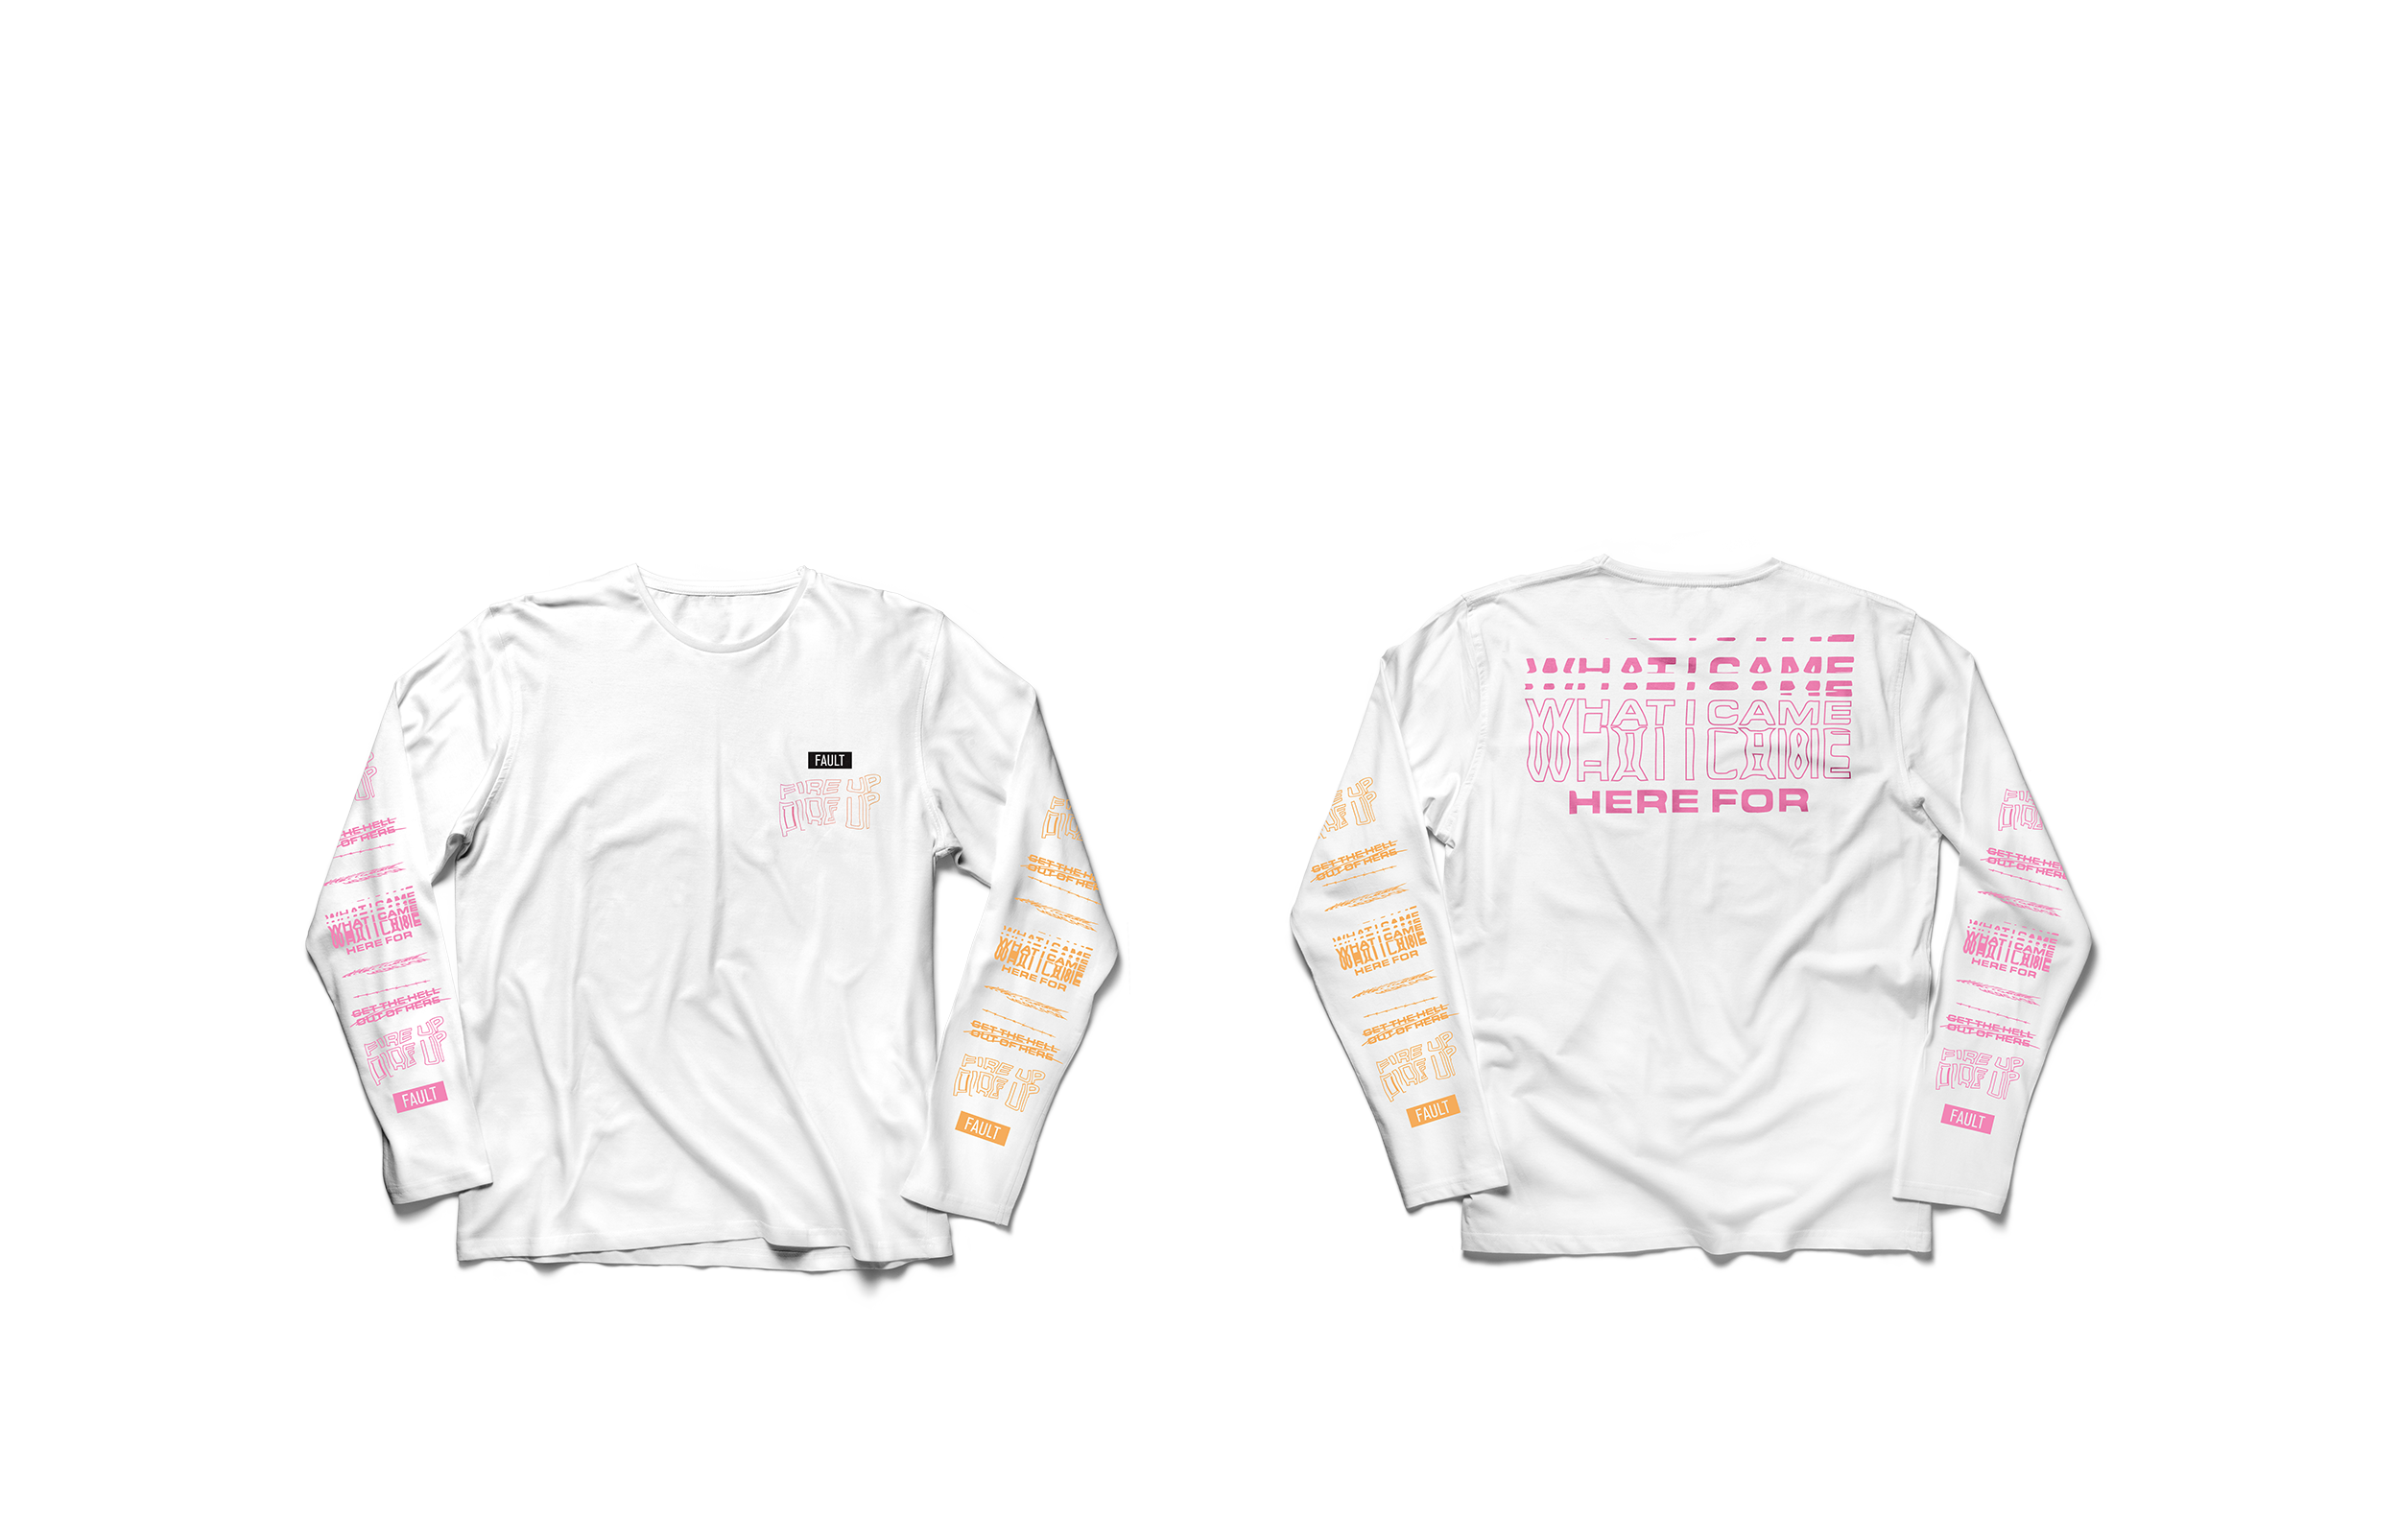 FU_Merch_Website_LS.png